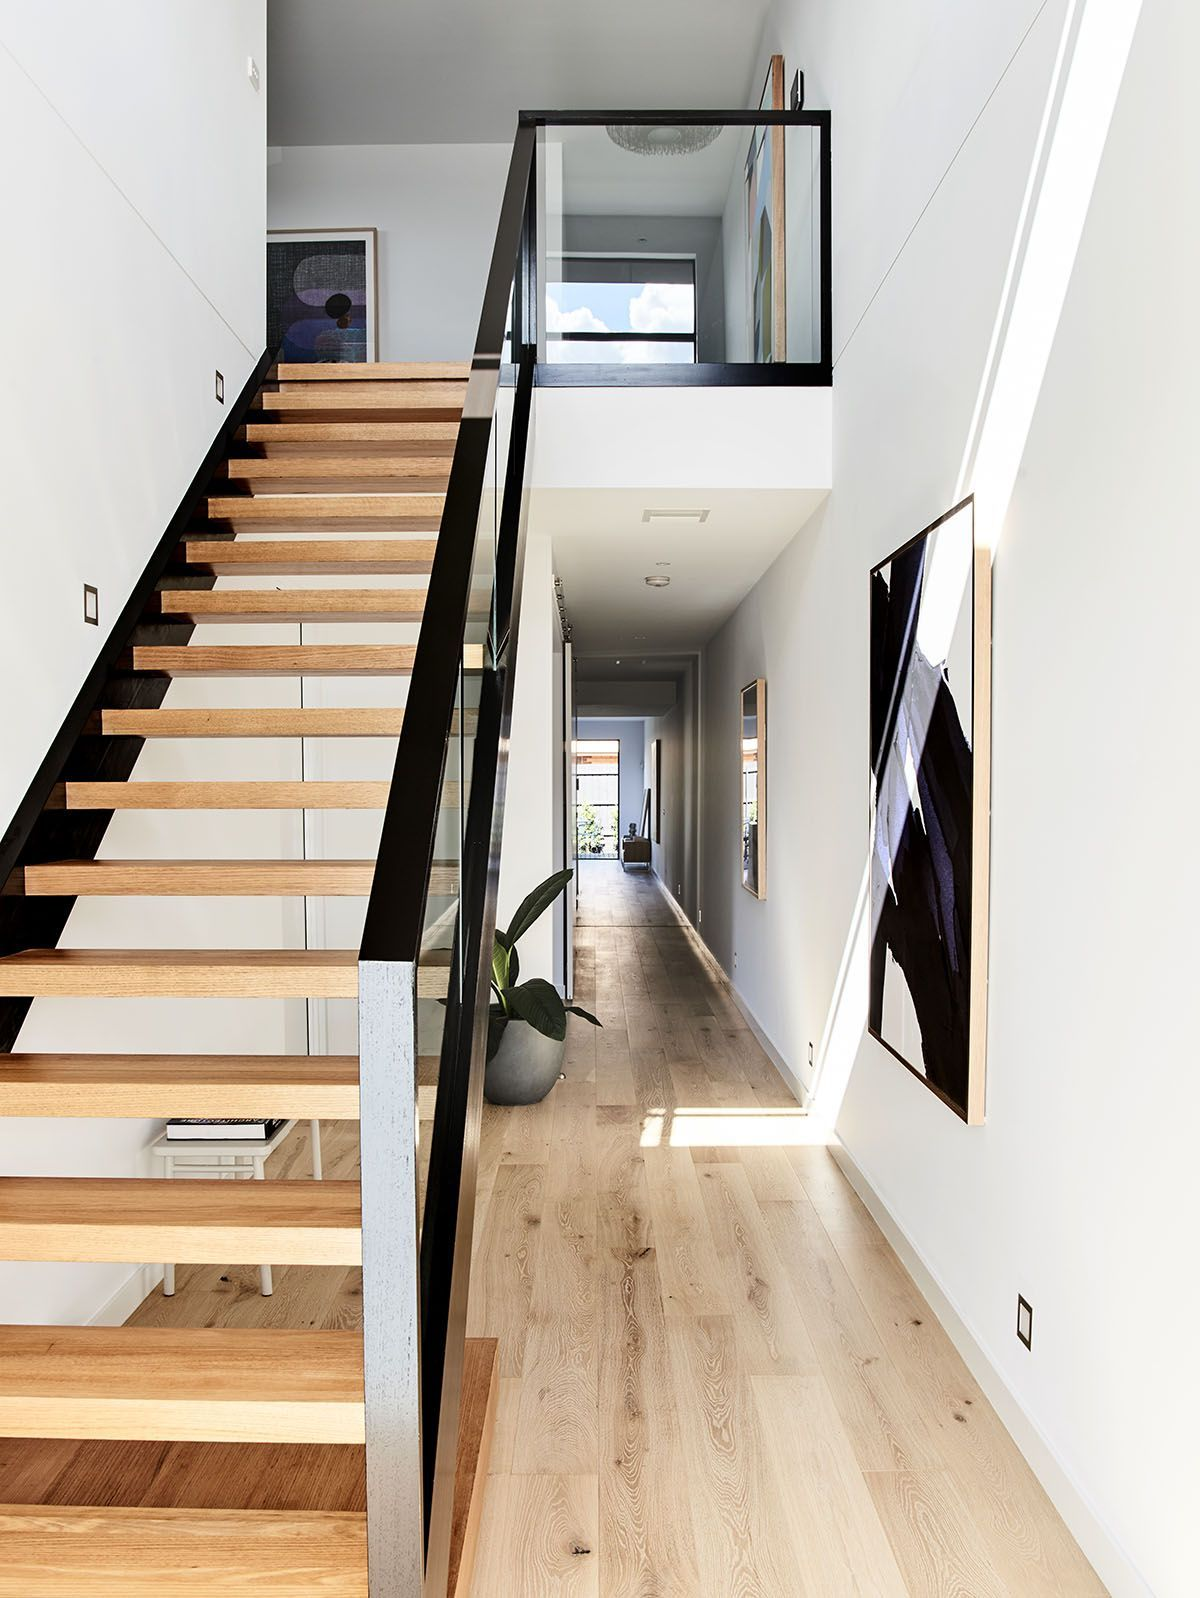 Simple Stairs Design For Small House Stairs Design Small House